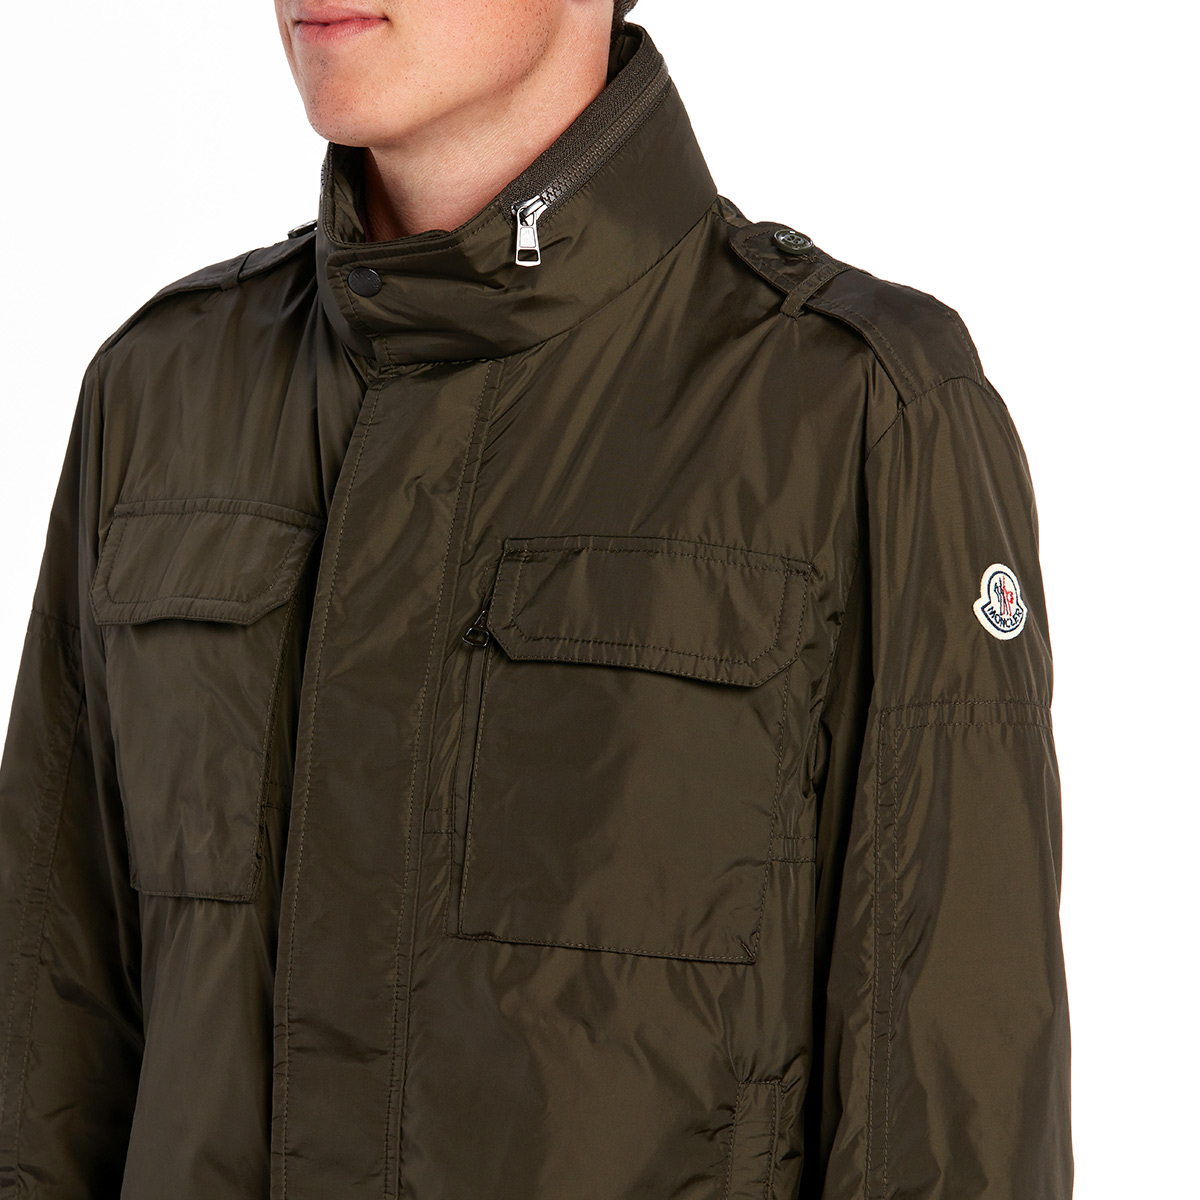 Close-up shot of a man wearing a zipped up hunter green parka.